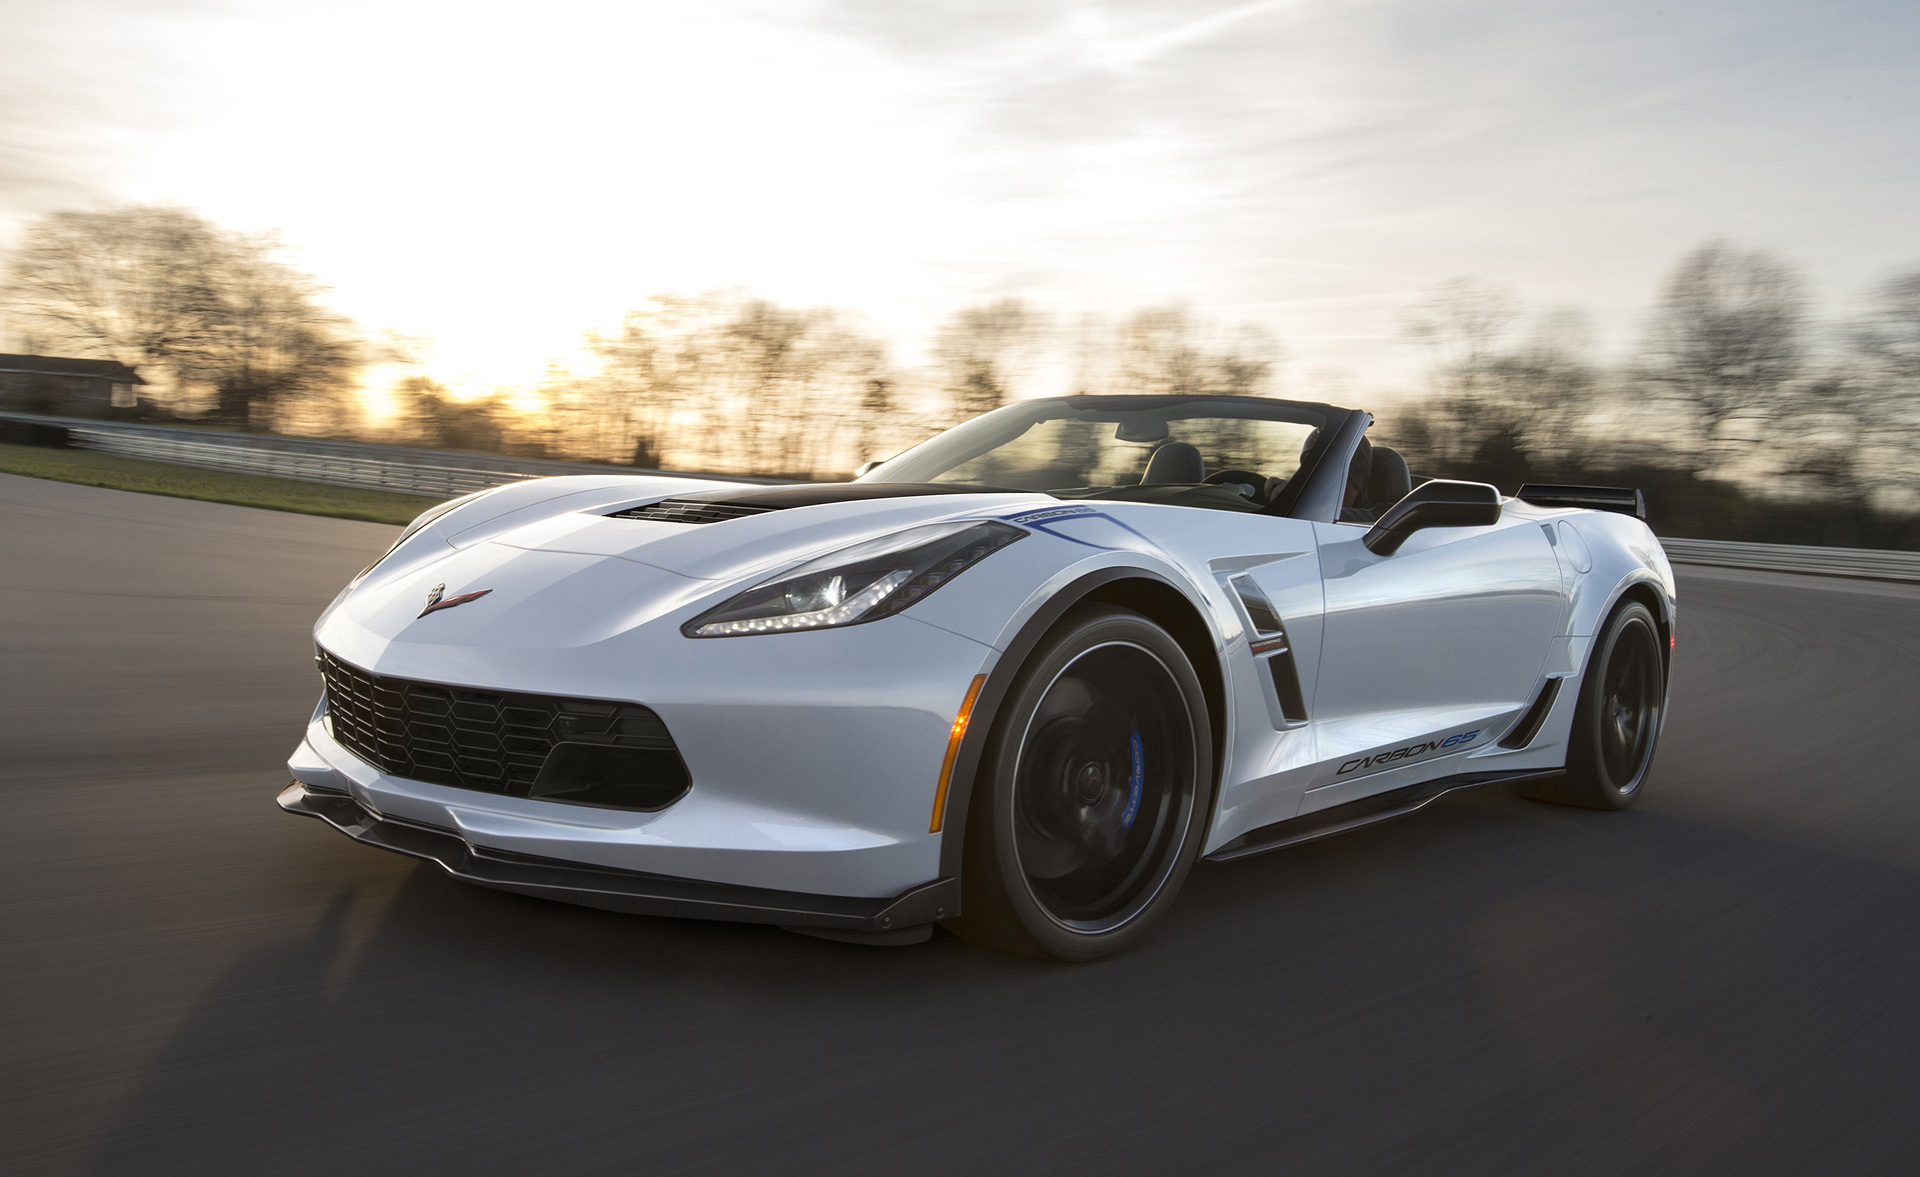 2018 chevrolet grand sport corvette.  chevrolet intended 2018 chevrolet grand sport corvette motorauthority